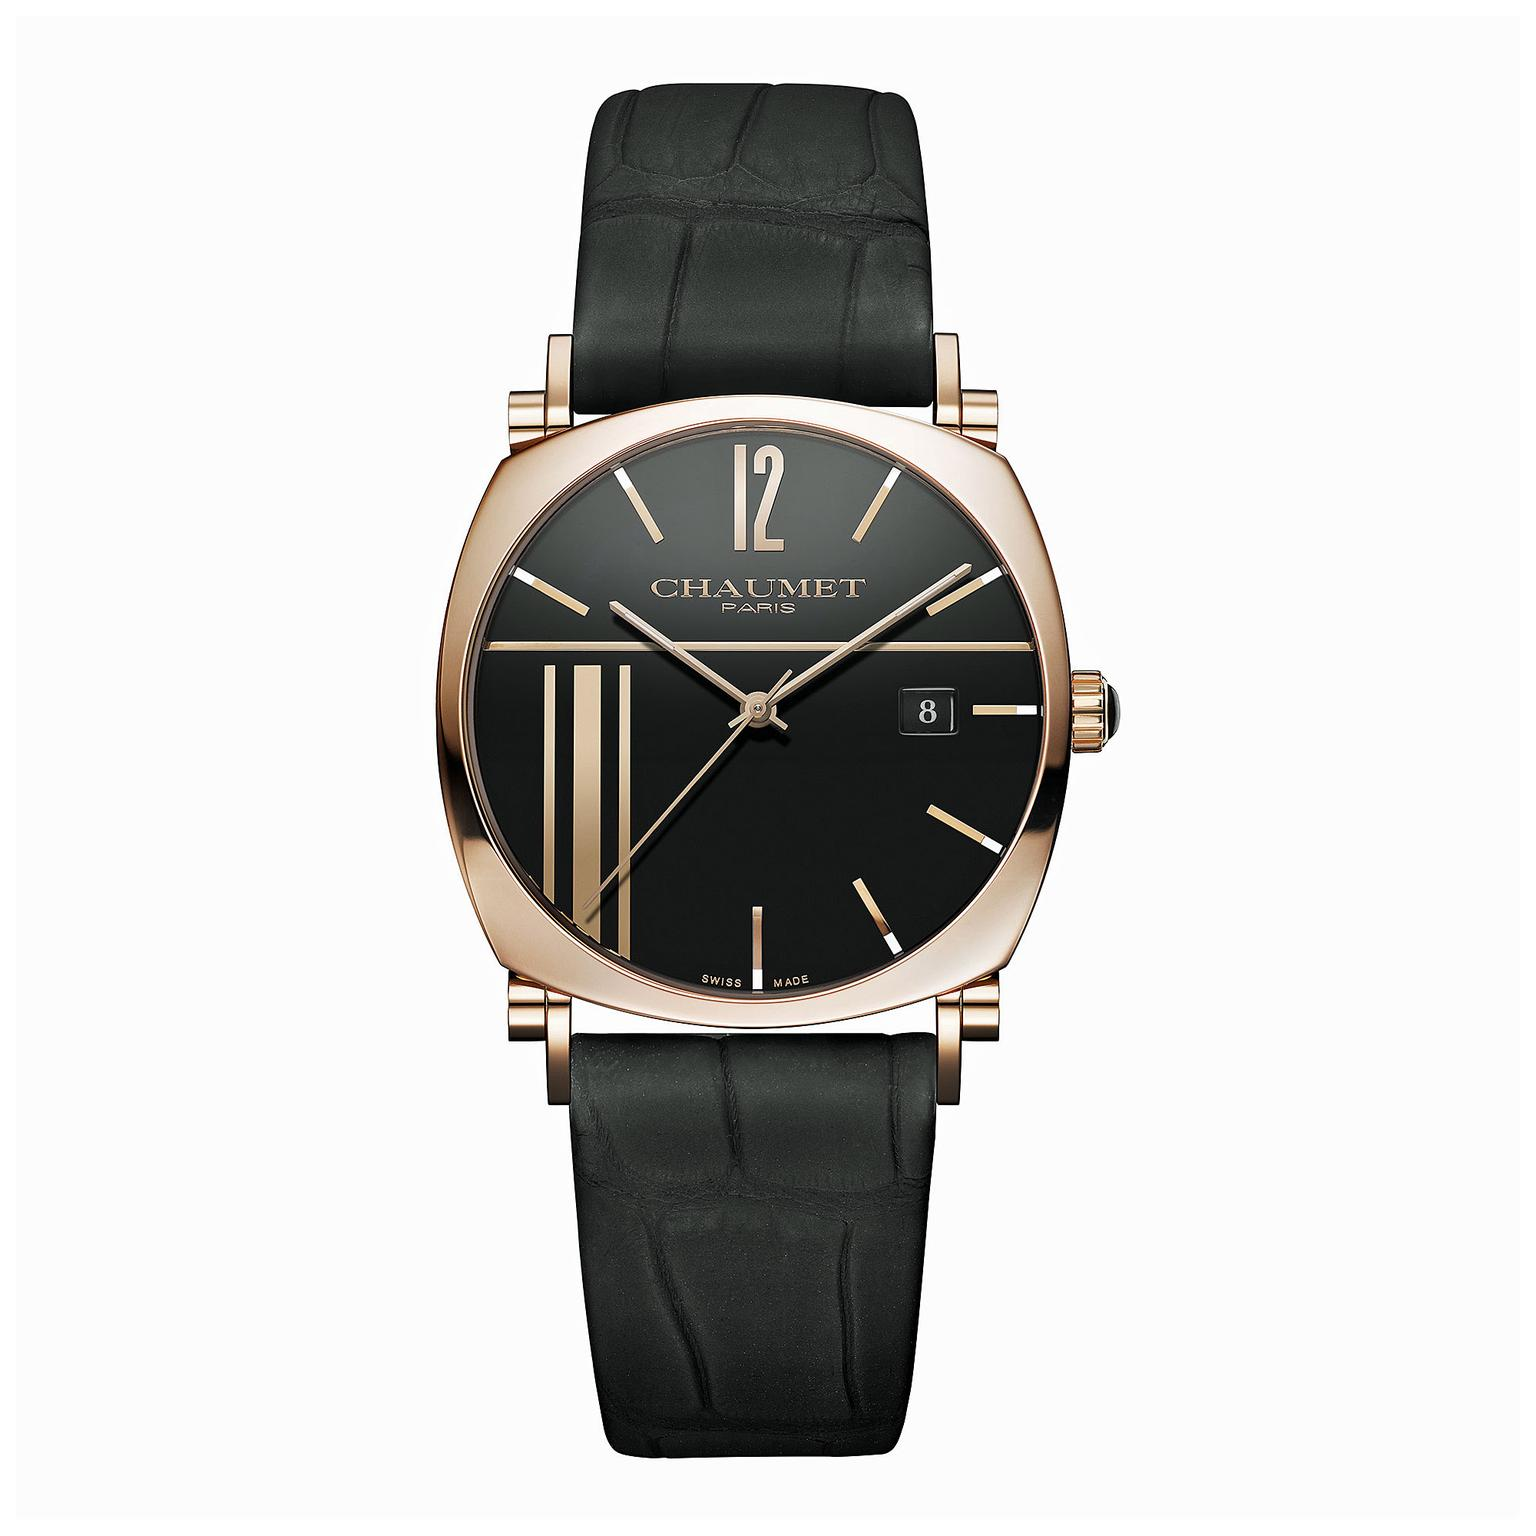 Chaumet Dandy rose gold watch